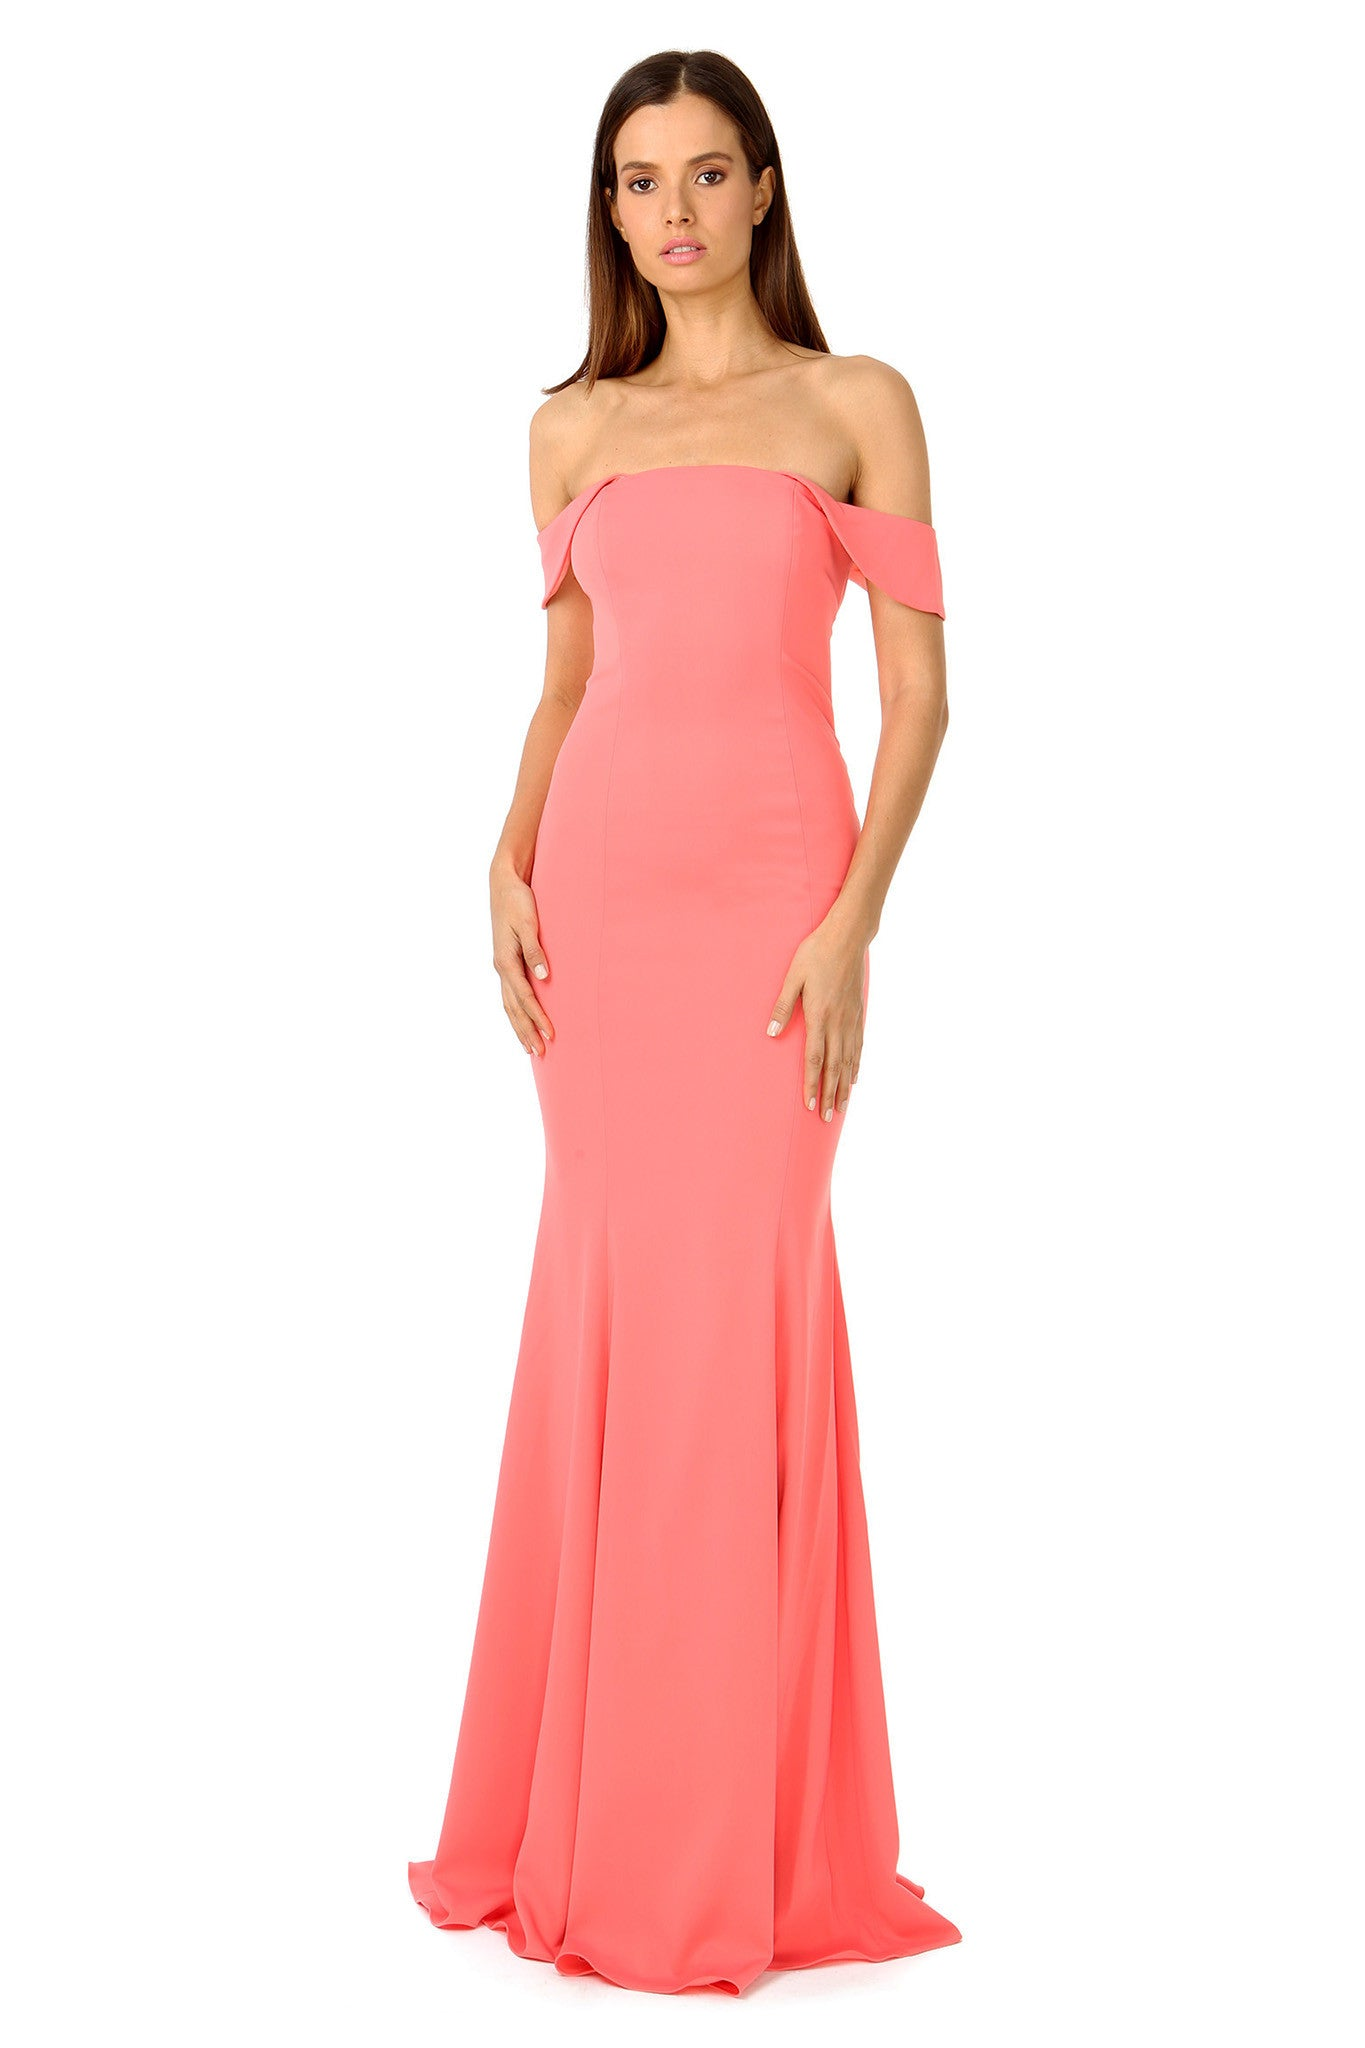 Jay Godfrey Off-the-Shoulder Coral Gown - Front View